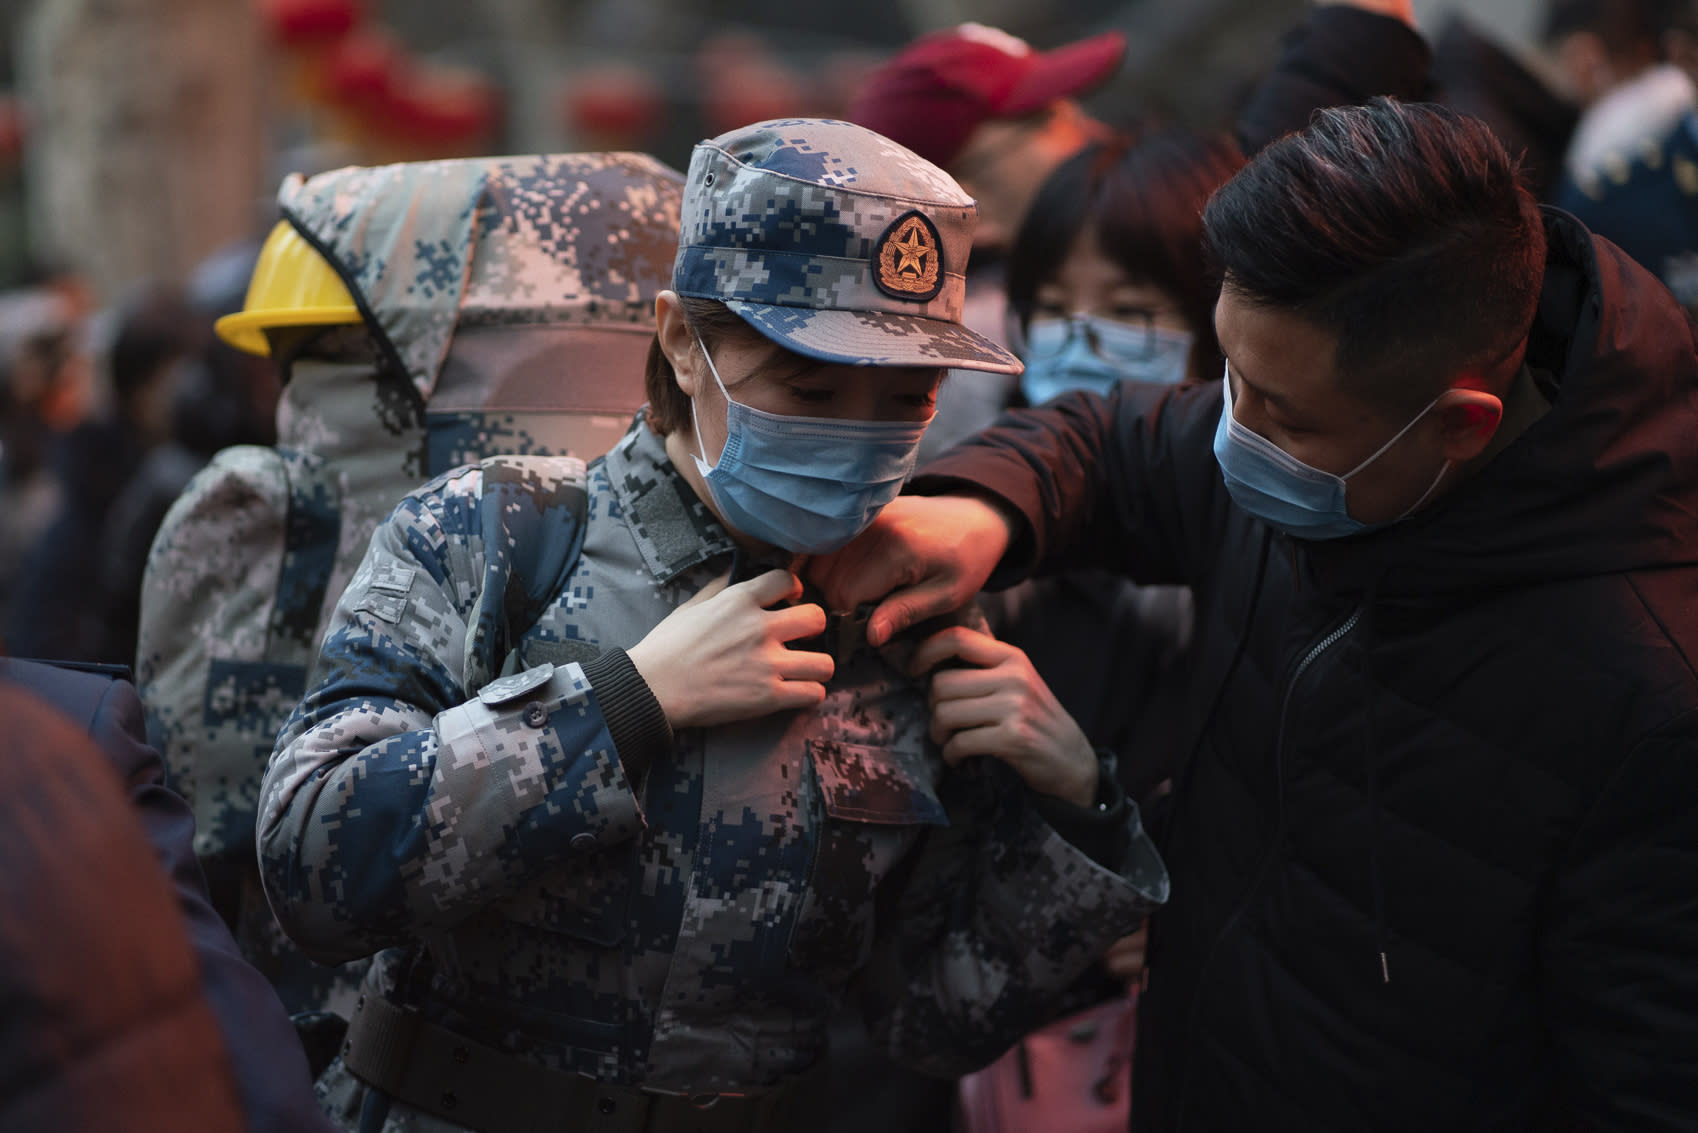 New China virus 'not as powerful as SARS': health official